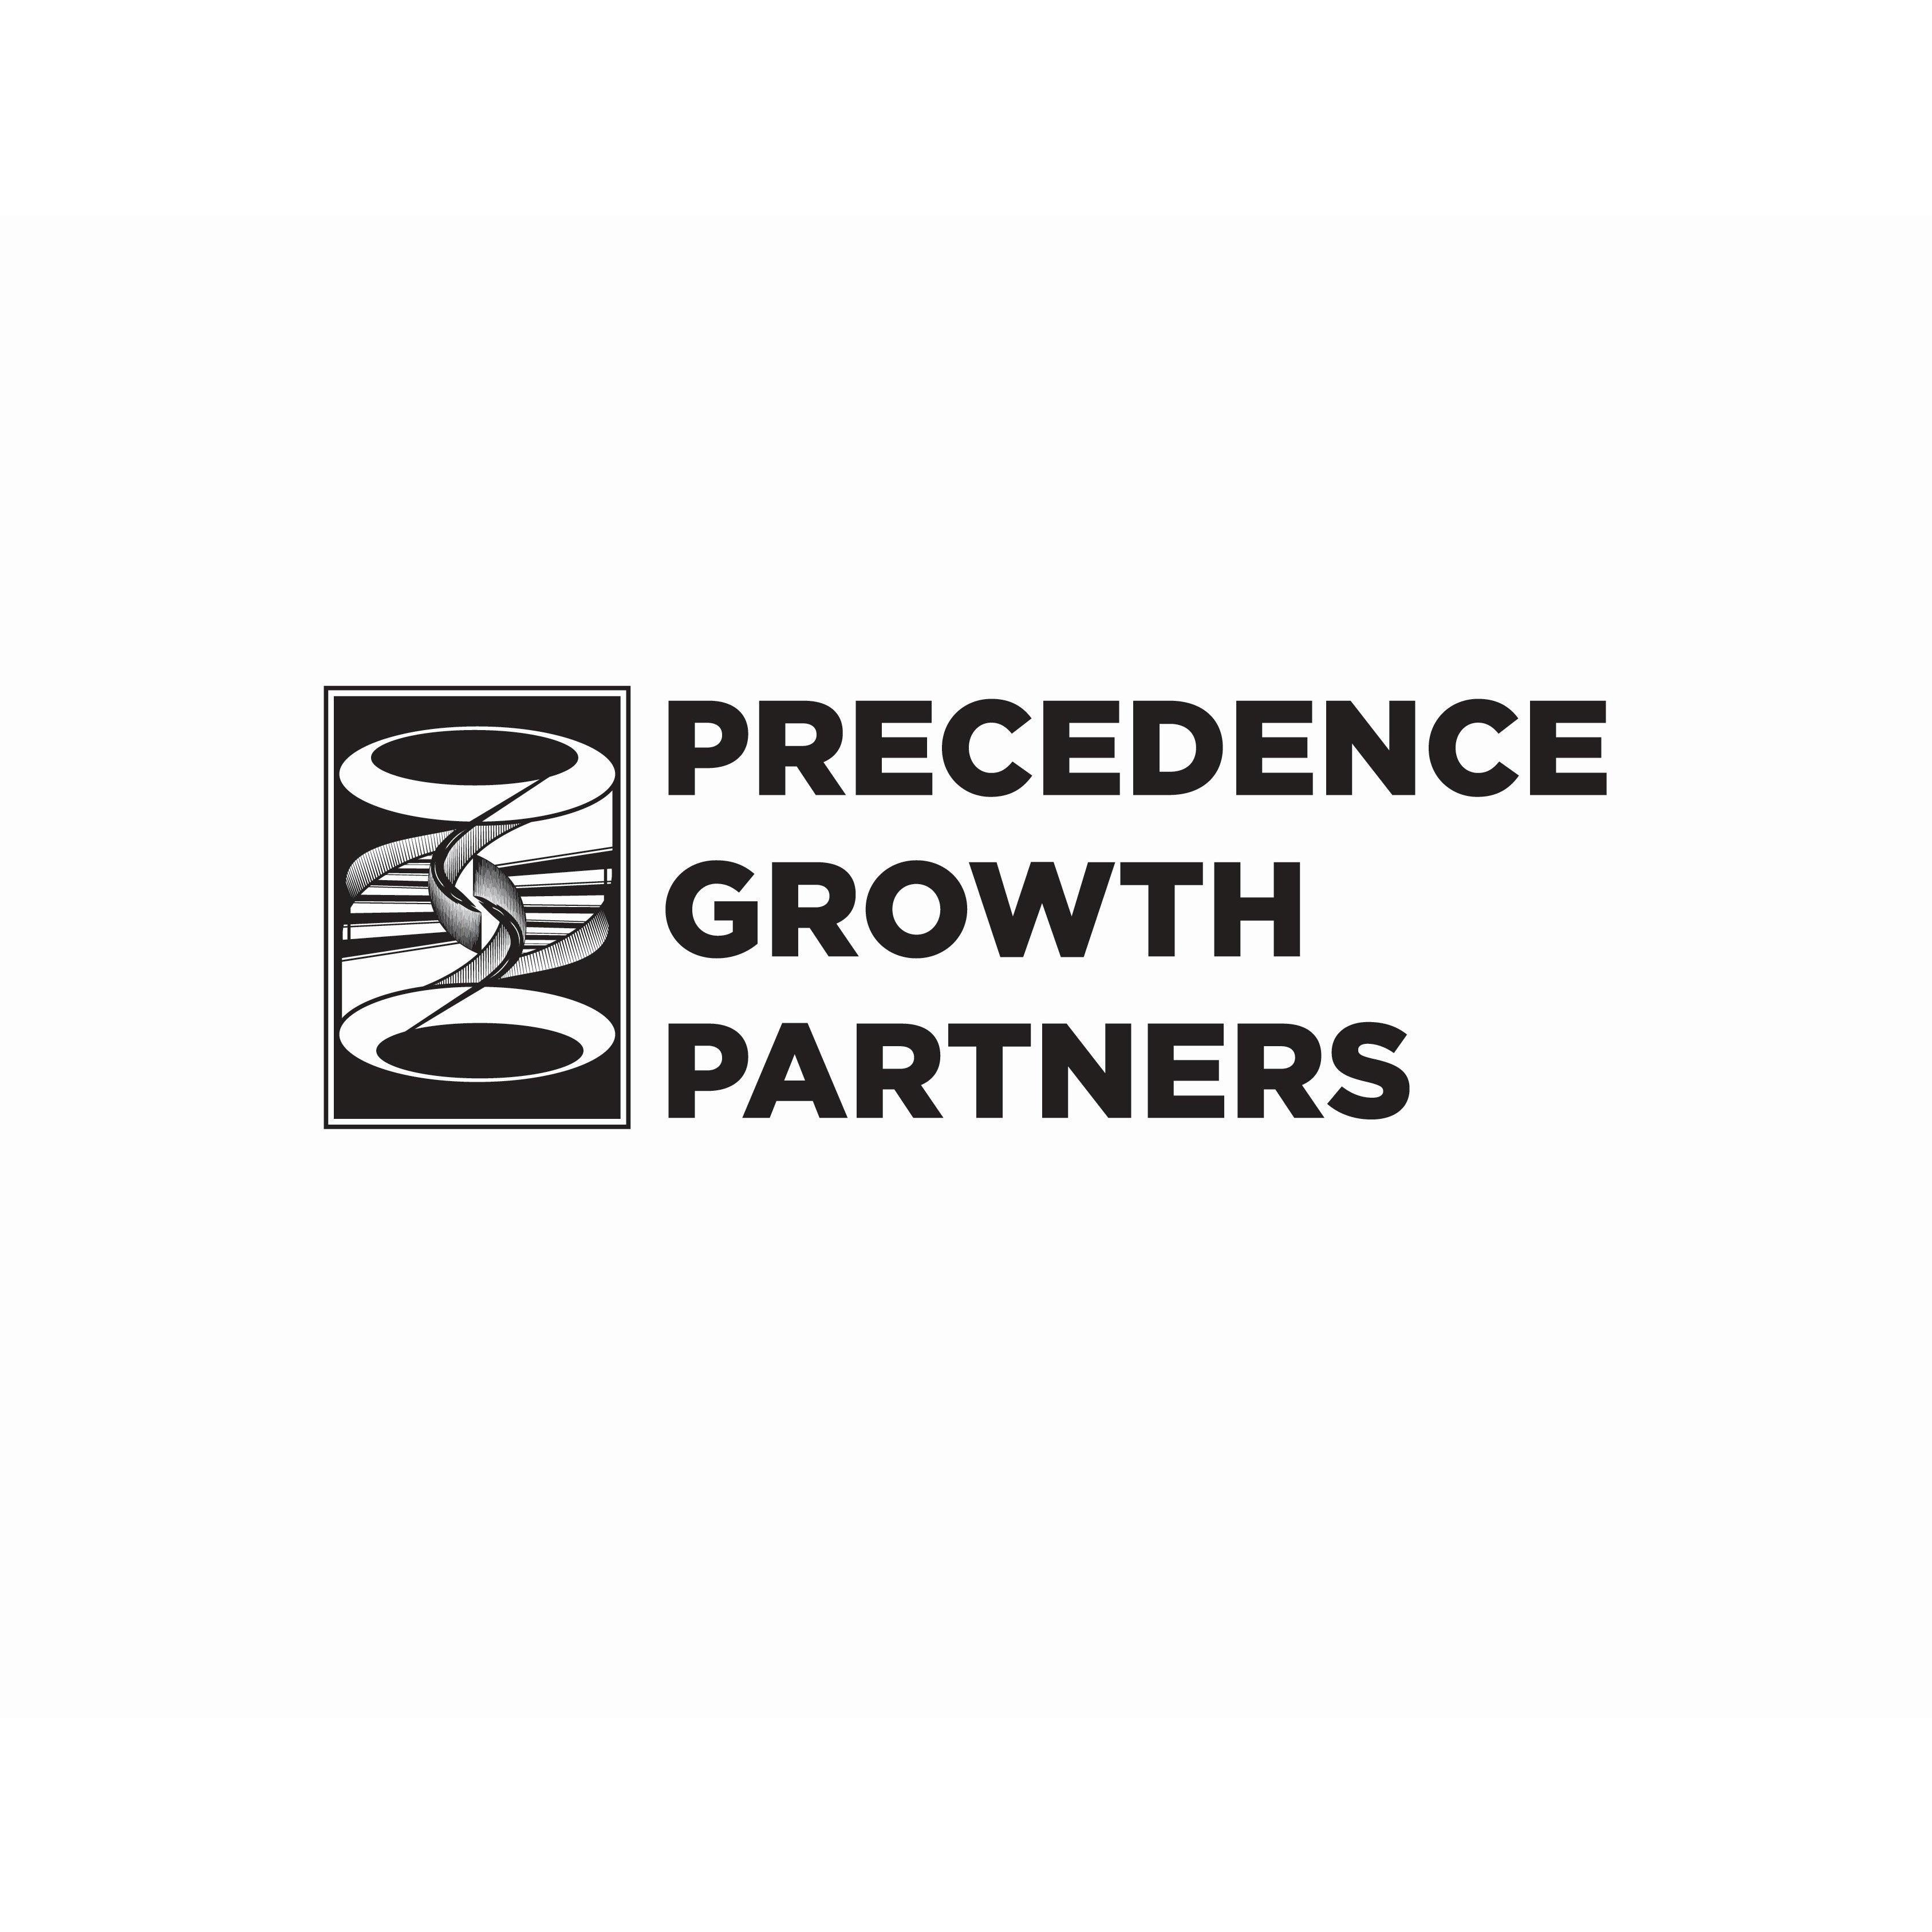 Precedence Growth Partners